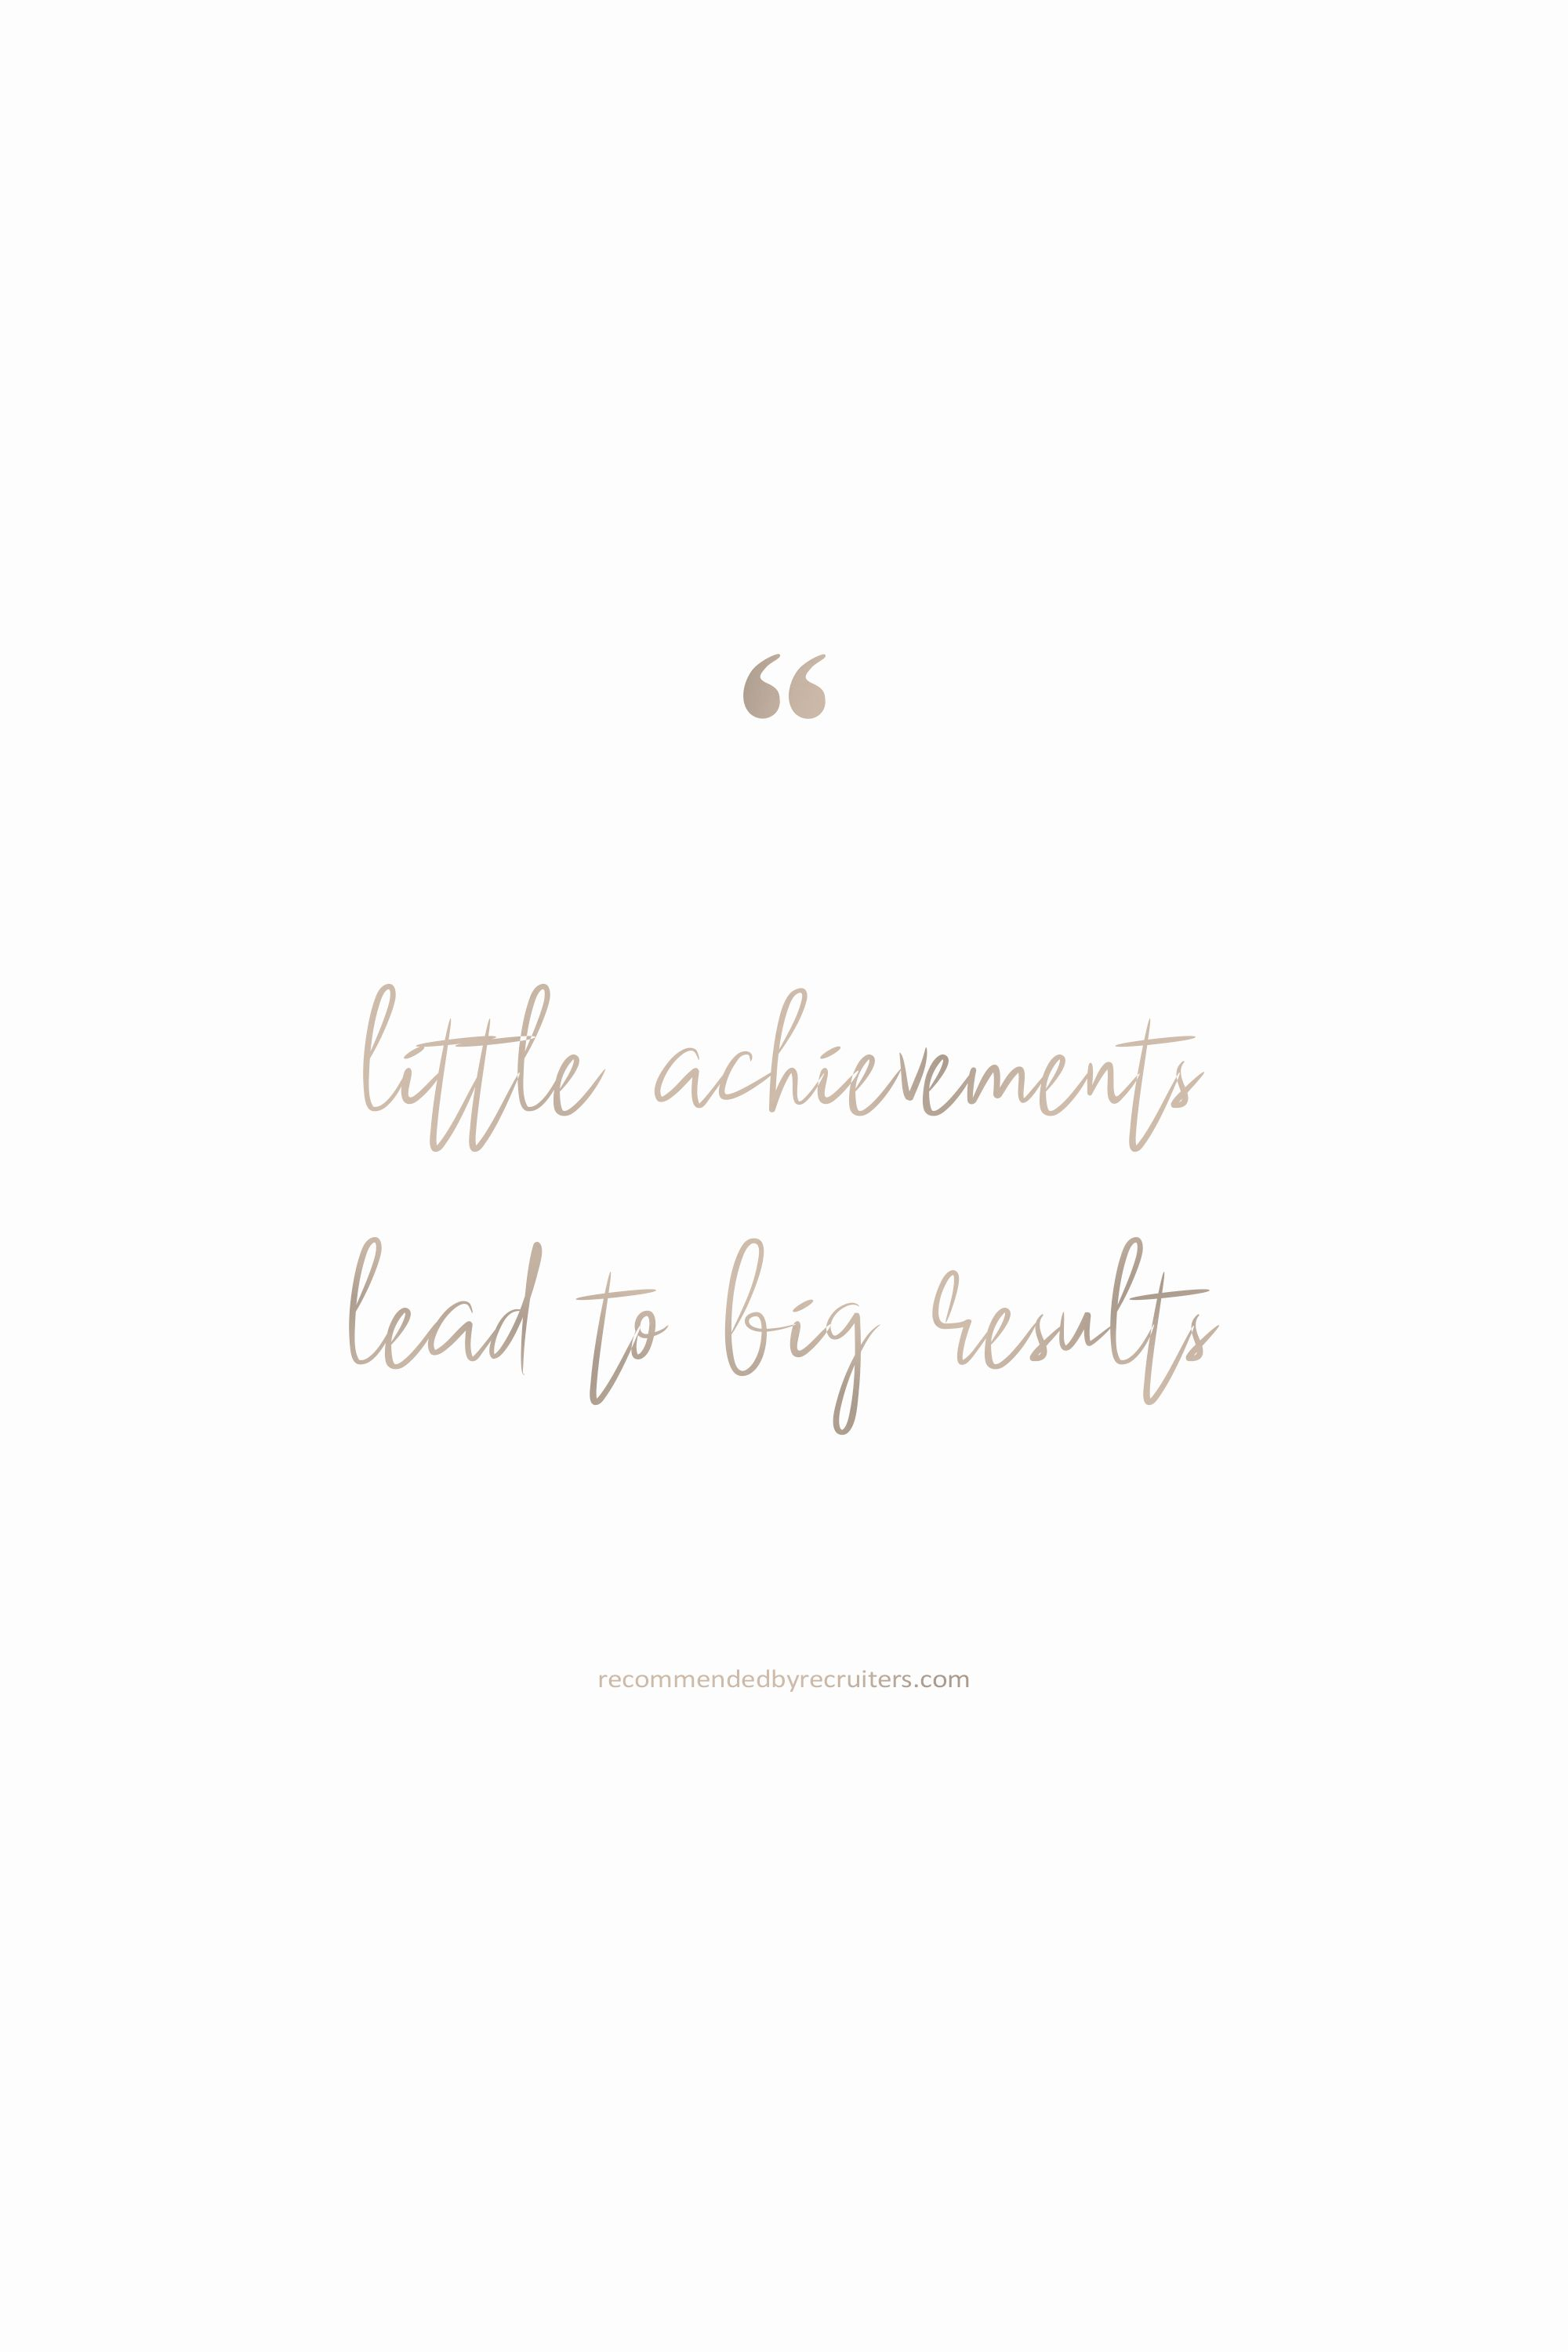 Little achievements lead to big results quote